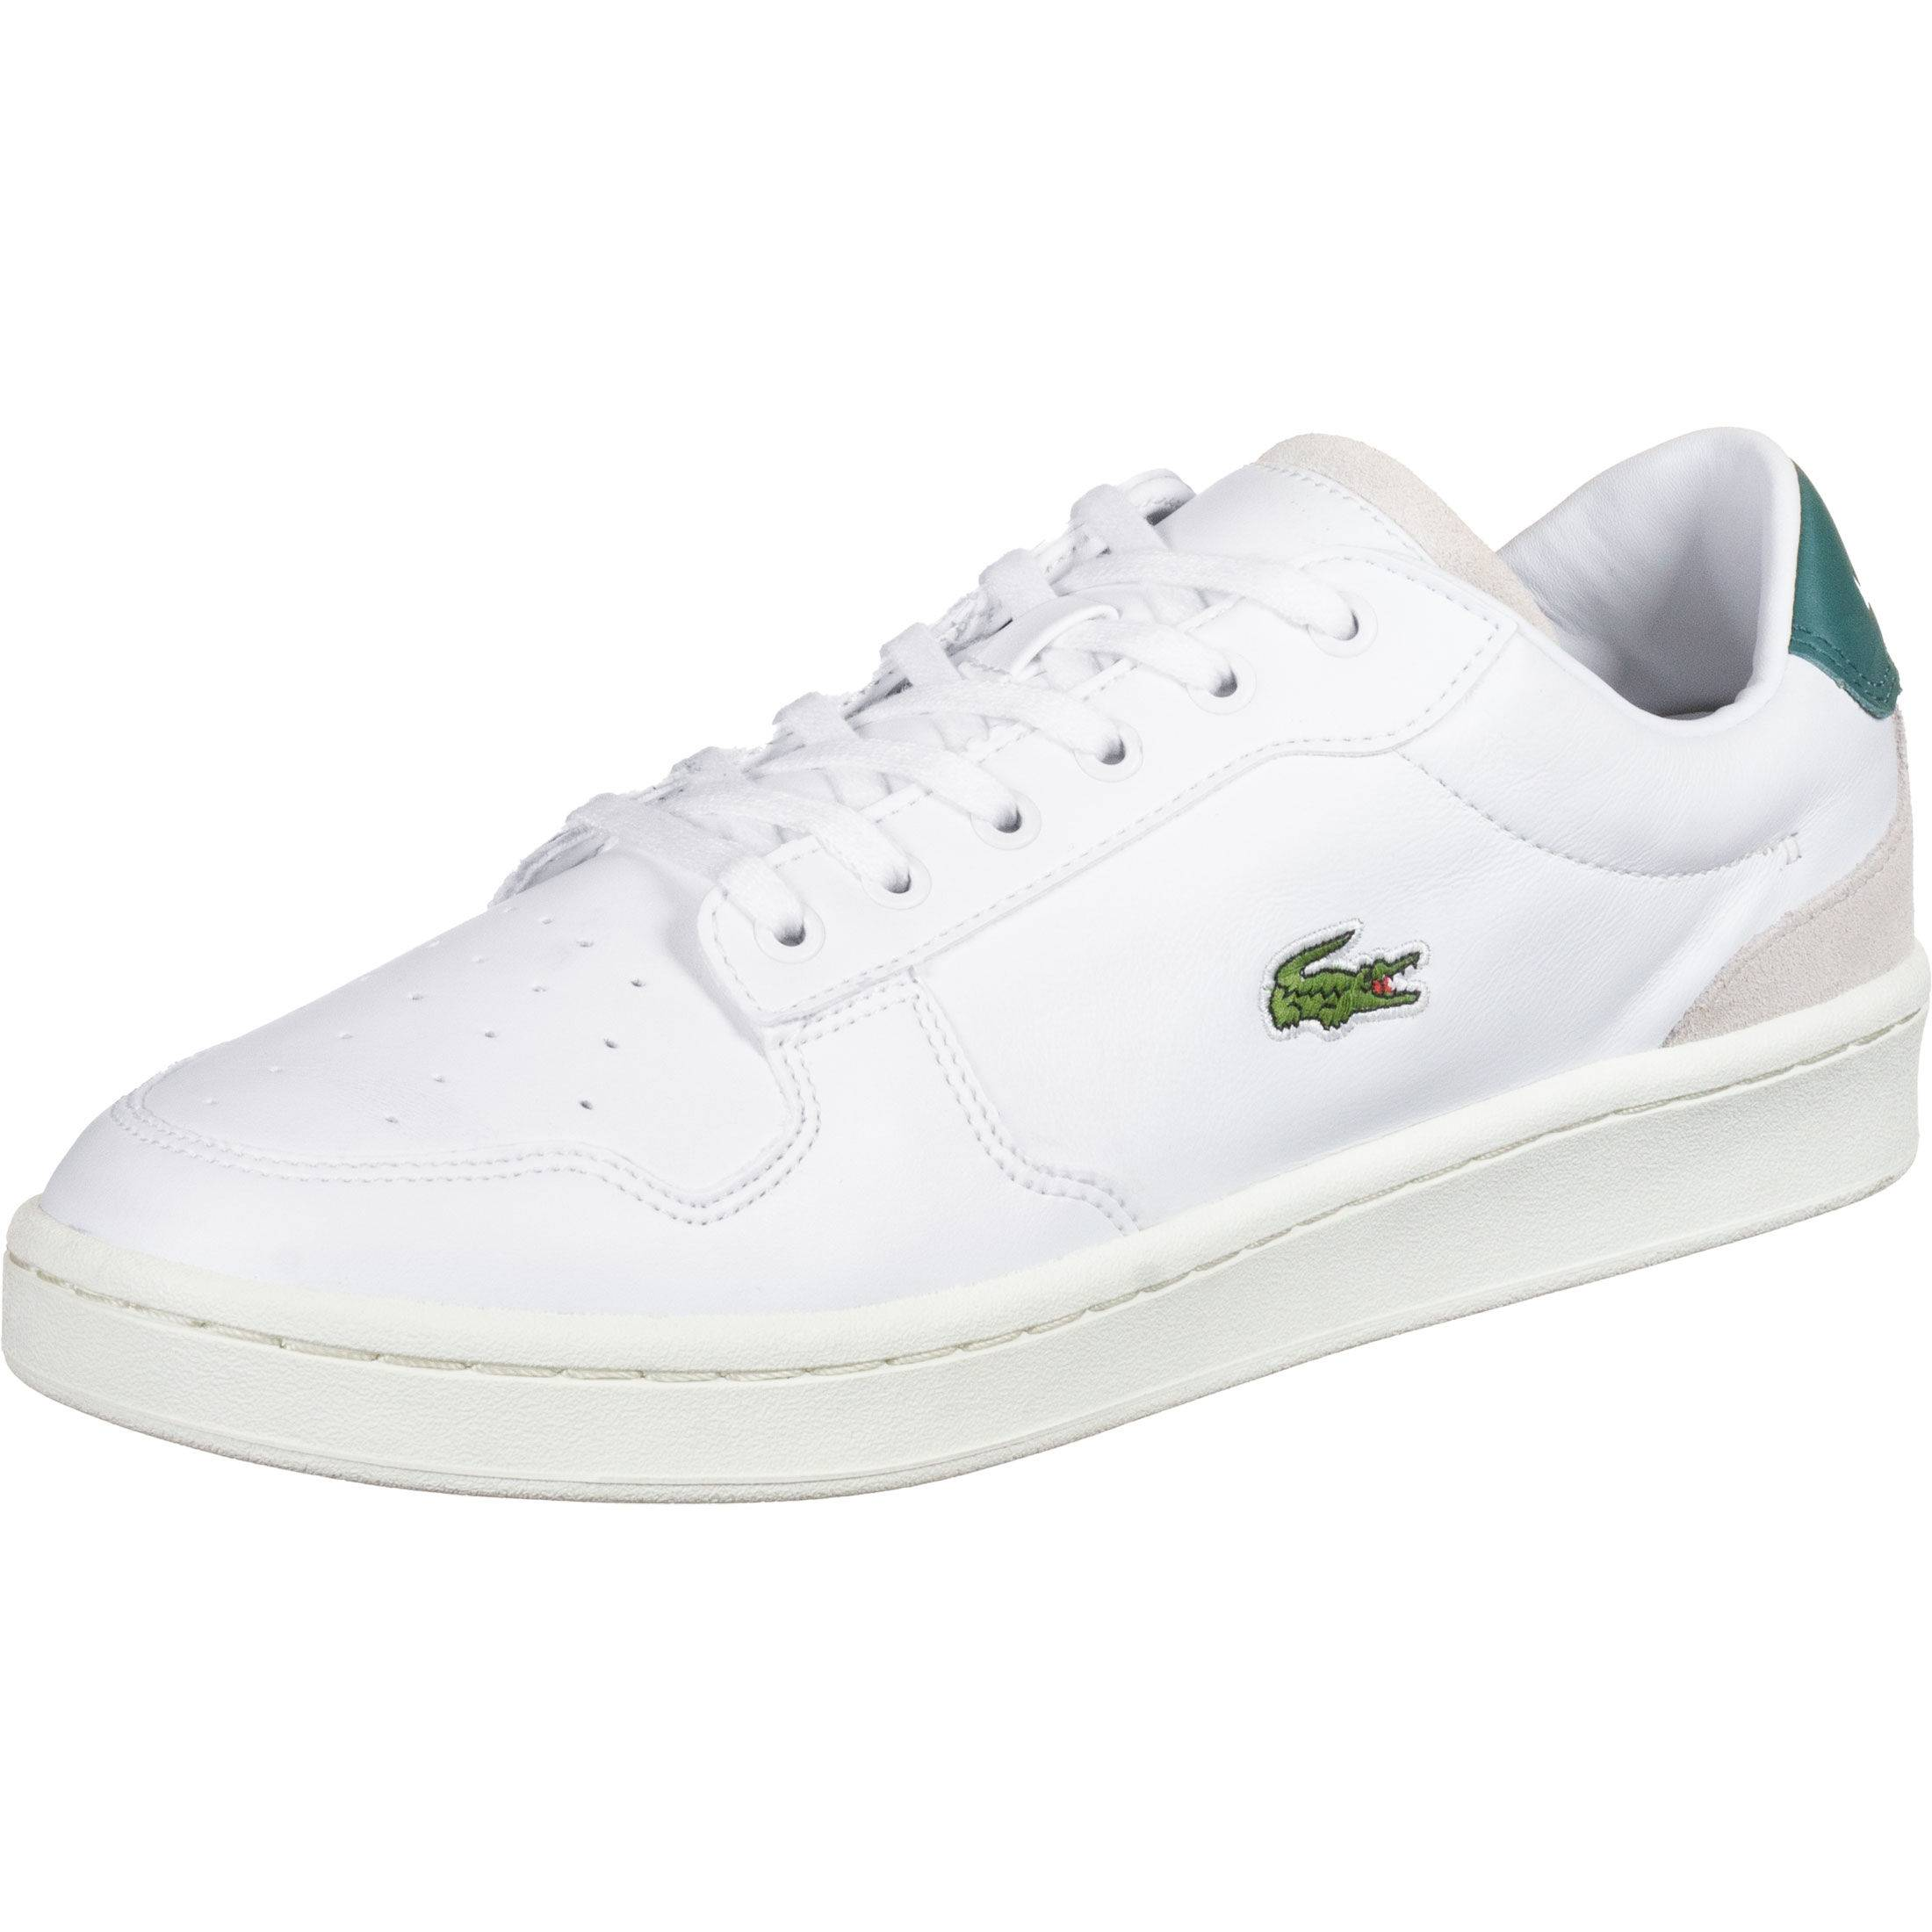 Lacoste Masters Cup, 40.5 EU, homme, blanc